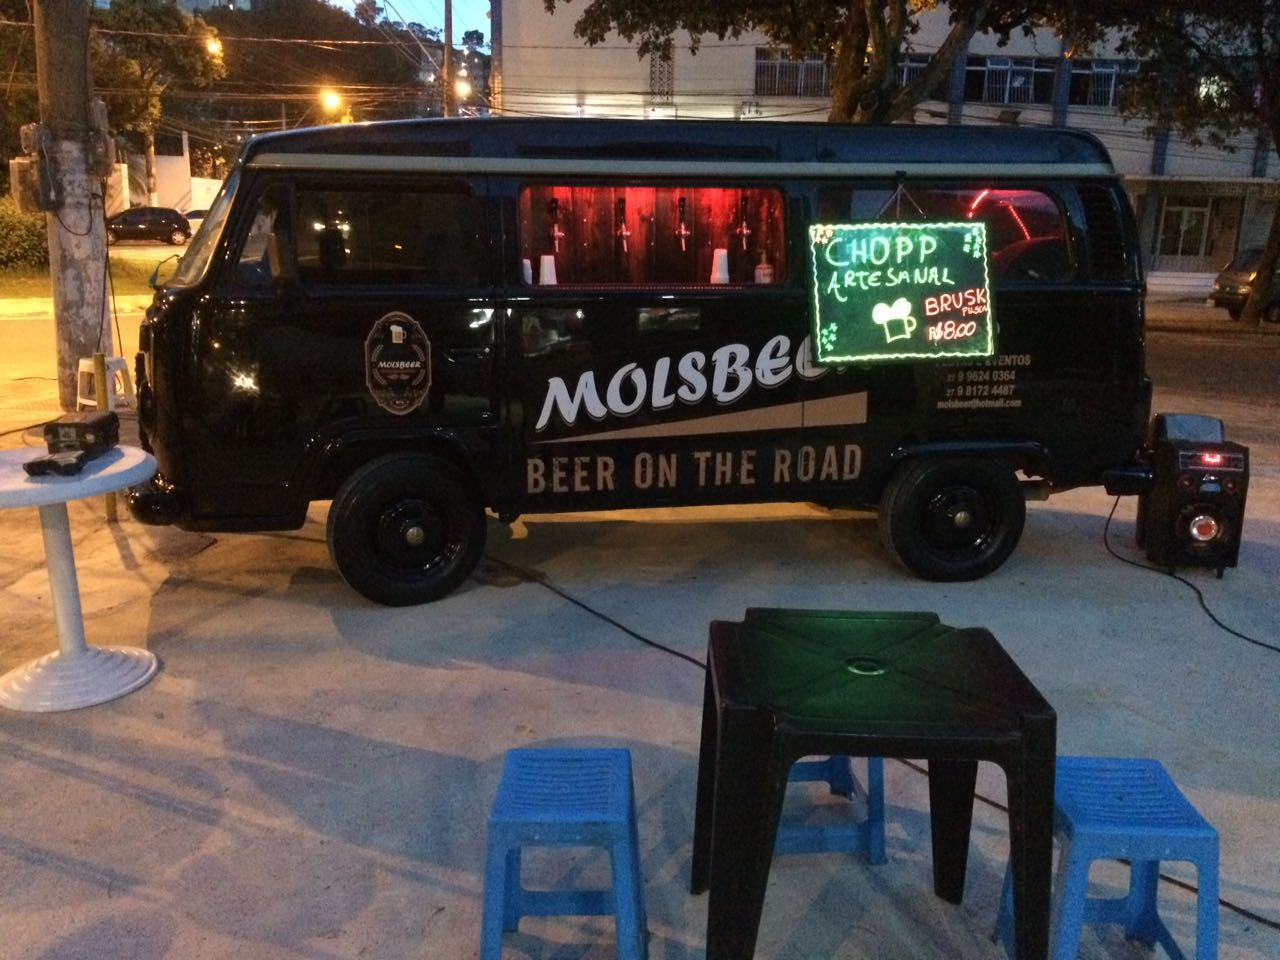 Beer truck chopp (53)